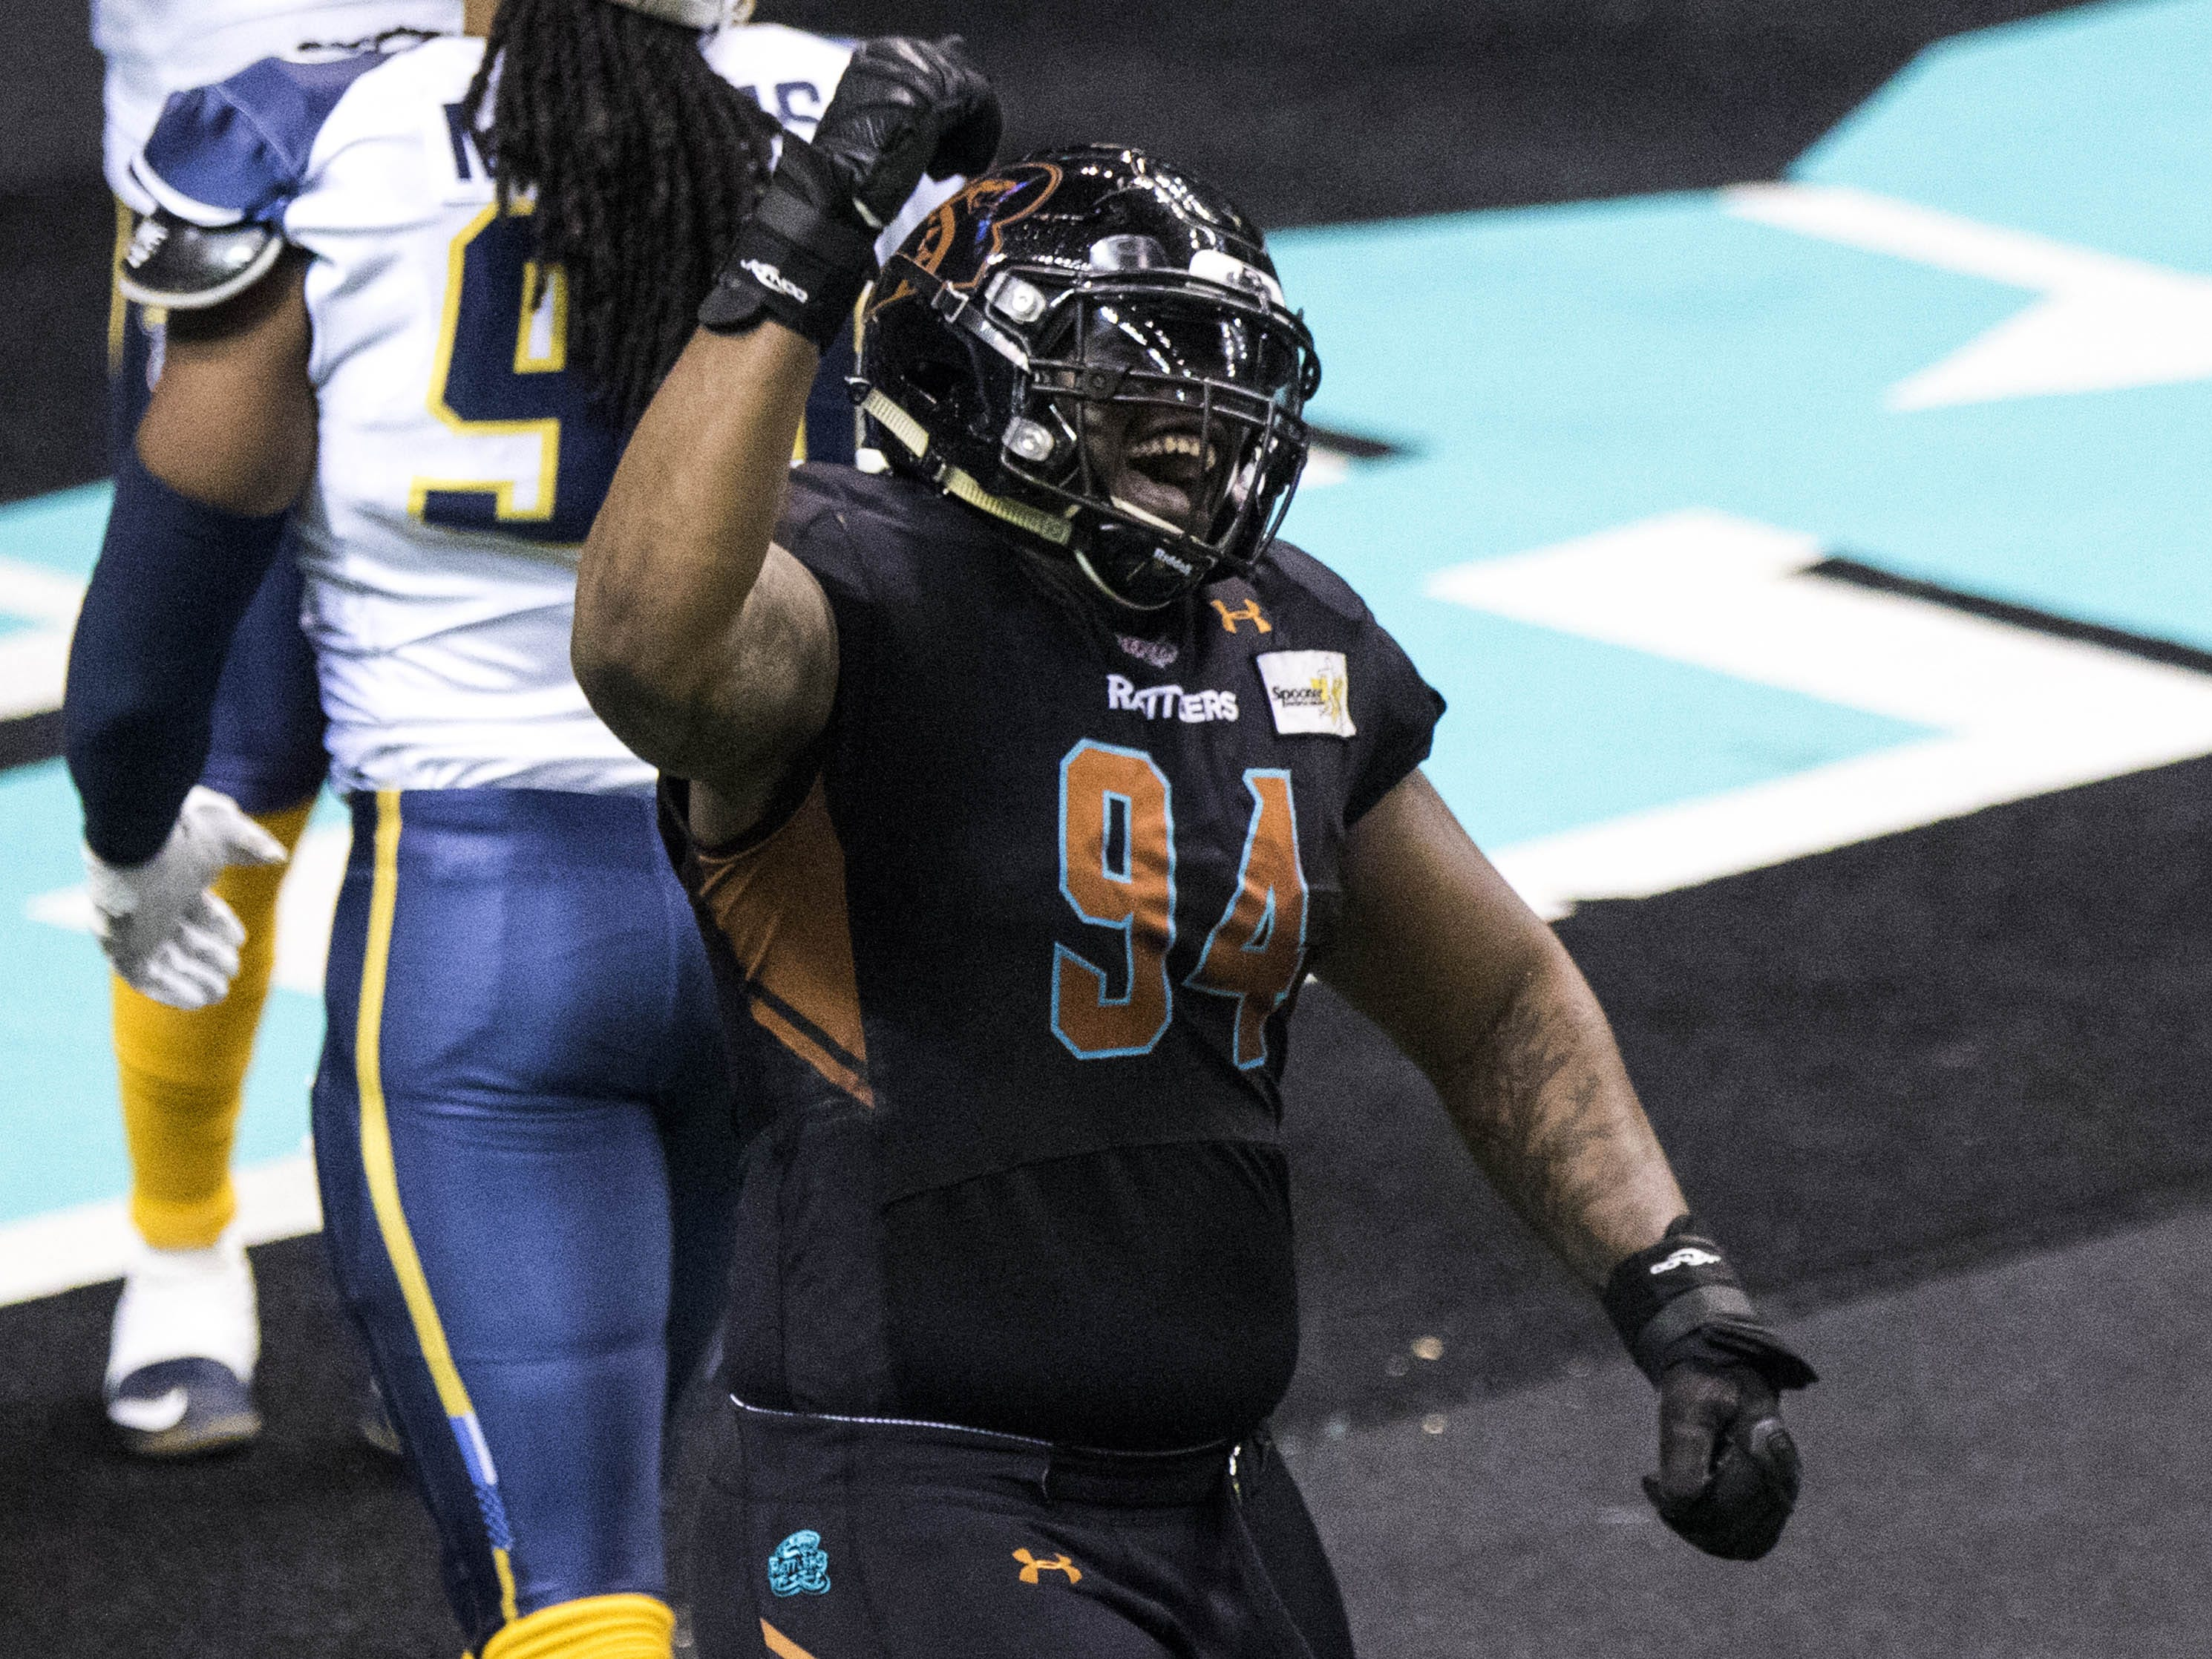 Arizona Rattlers' Lamar Mady (94) celebrates an early touchdown against the Cedar Rapids River Kings during the first half of their game at Talking Stick Resort Arena in Phoenix, Sunday, March 3, 2019.